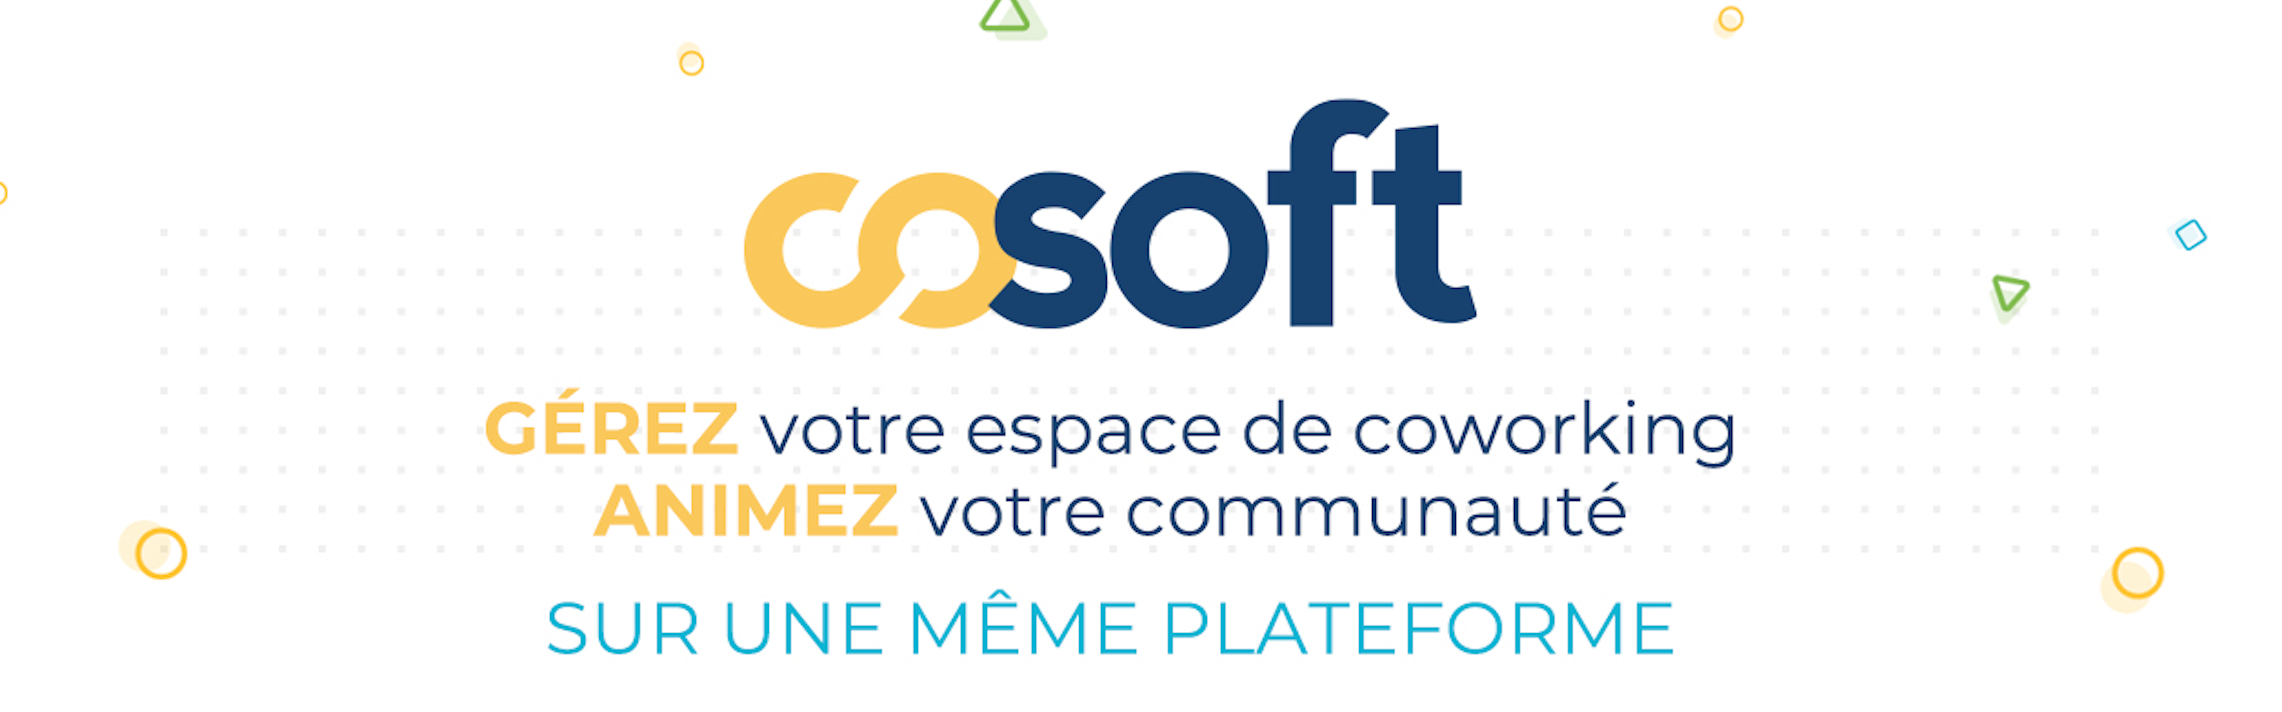 Review Cosoft: Coworking space management tool - Appvizer